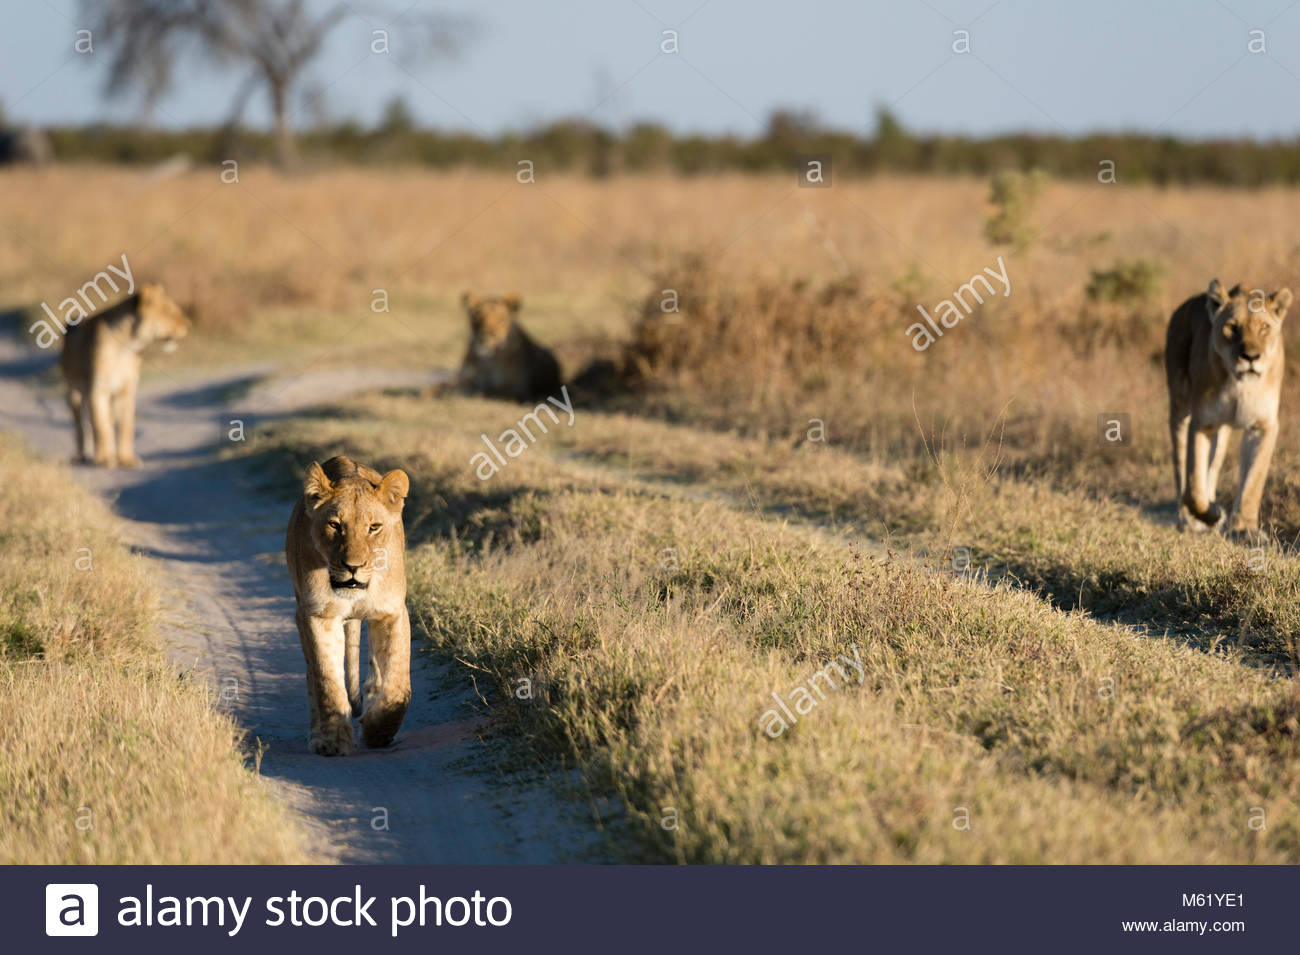 Lions, Panthera leo, from the Marsh Pride, walking in search of food. - Stock Image